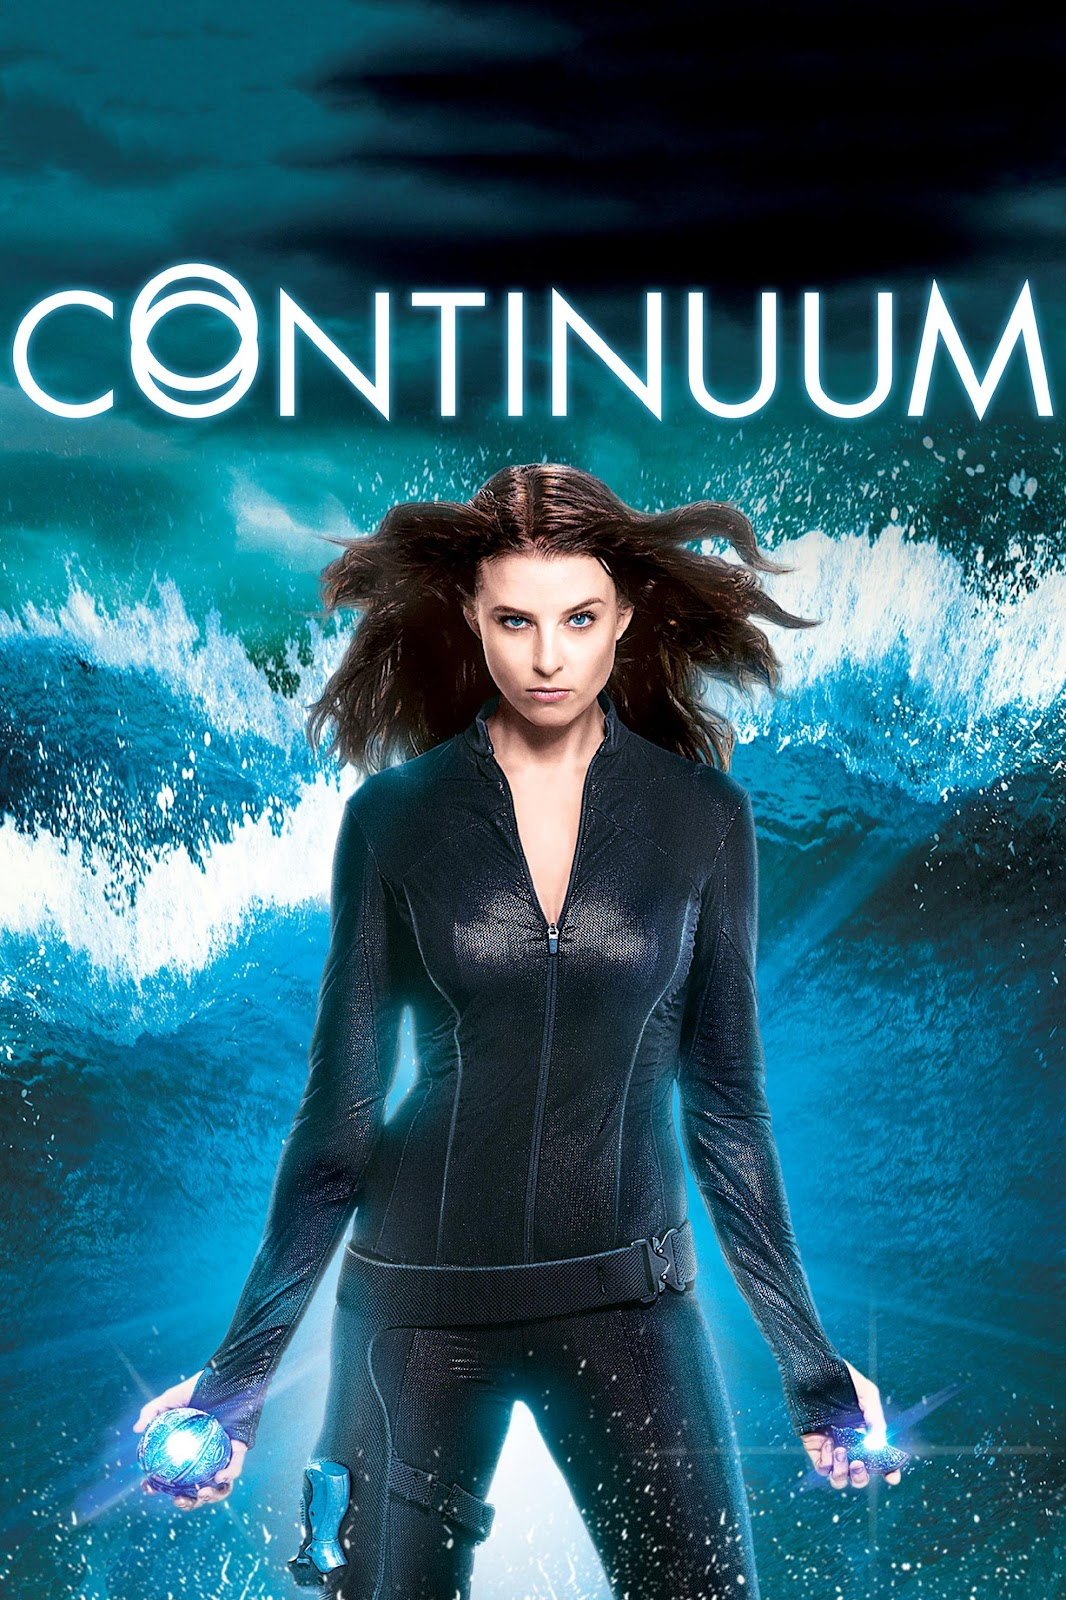 Continuum TV Show Poster - ID: 354413 - Image Abyss